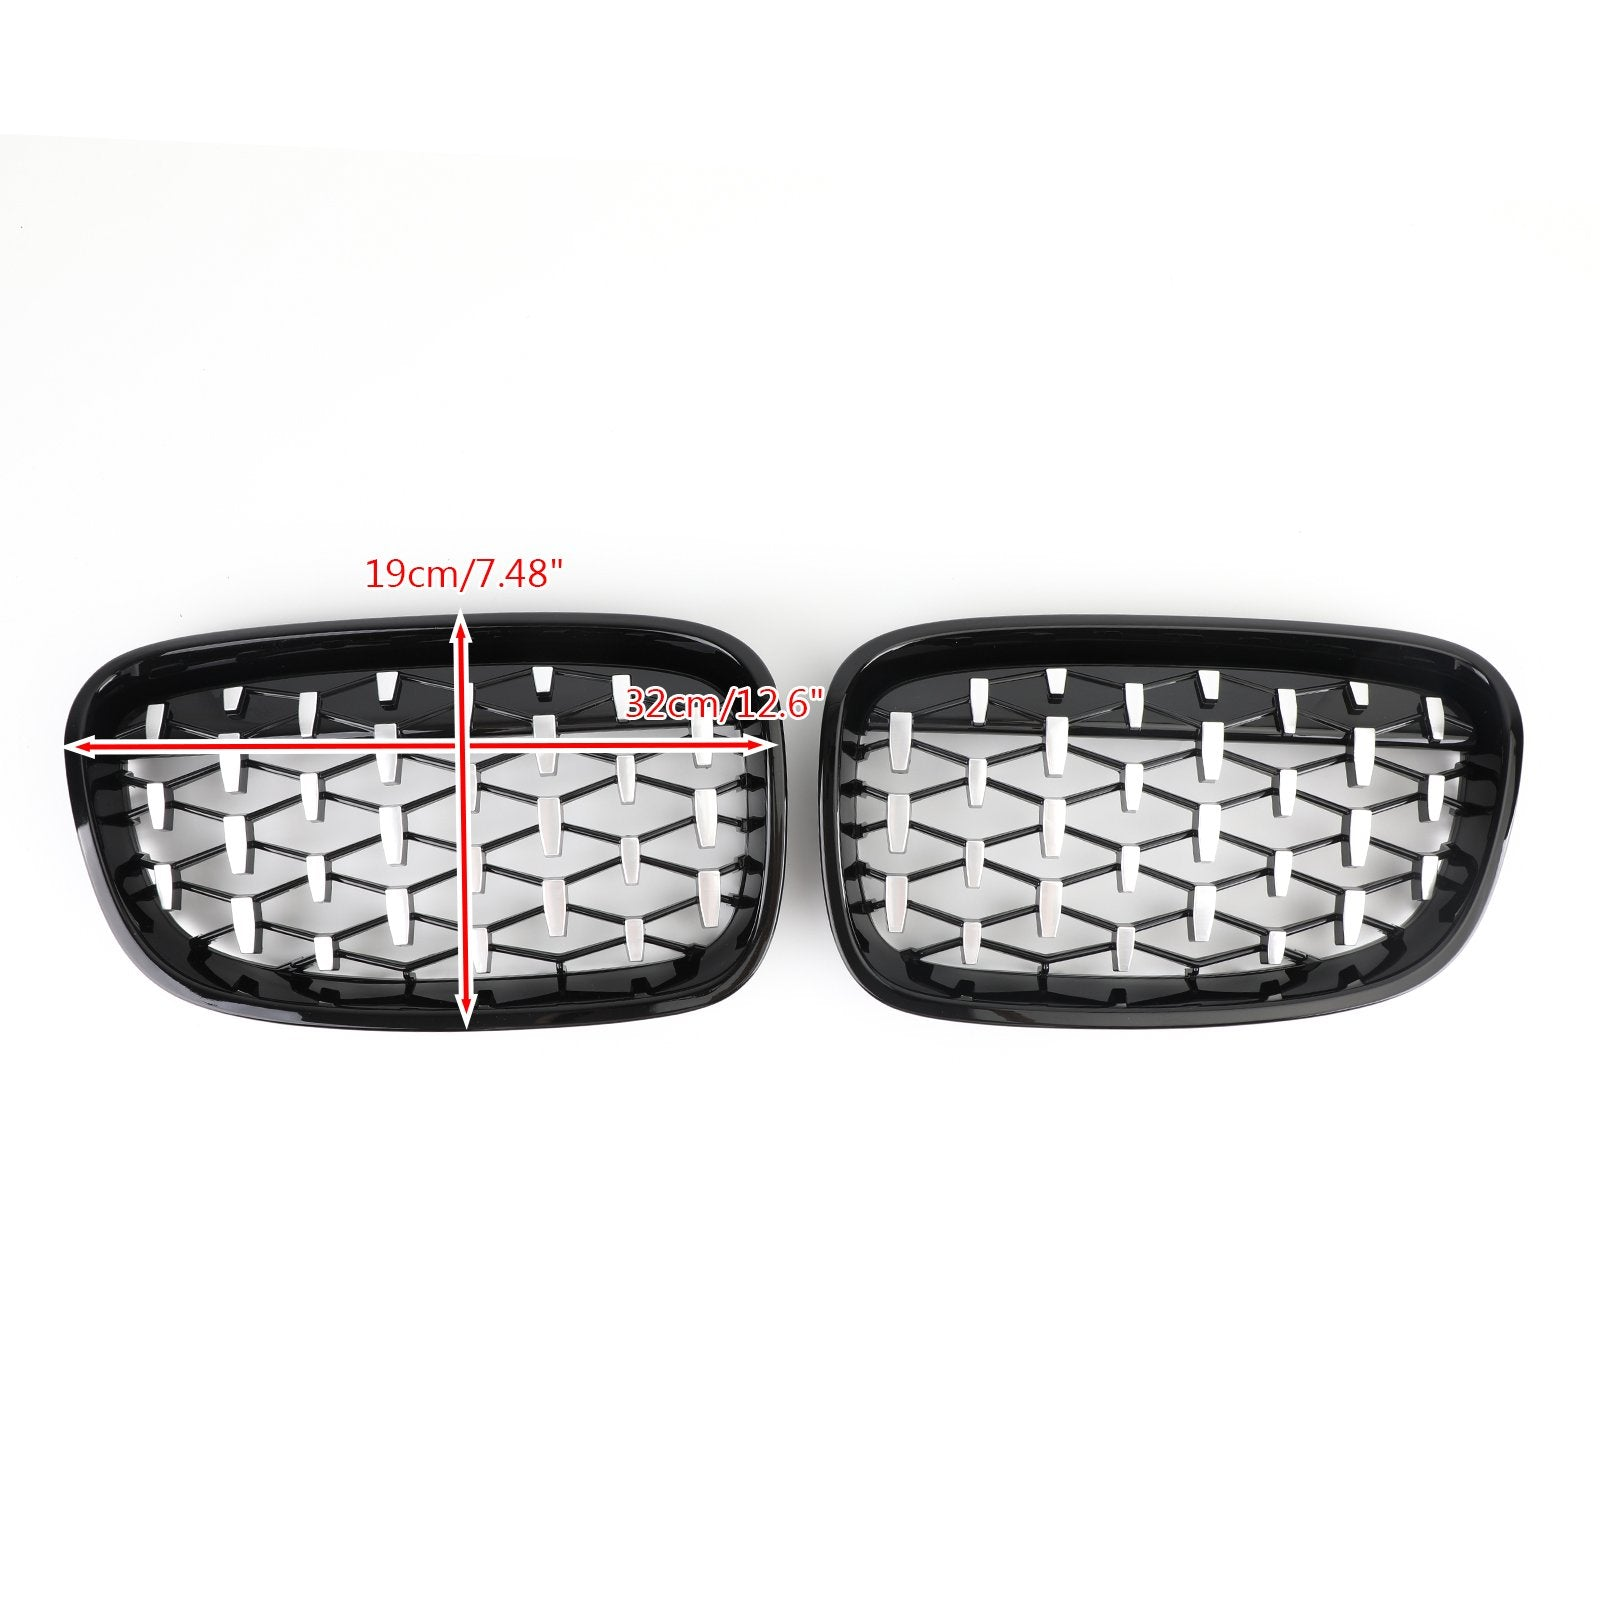 Black & Chrome Front Bumper Cover Grille Fit 12-14 BMW 1Series F20 116i 118i Generic